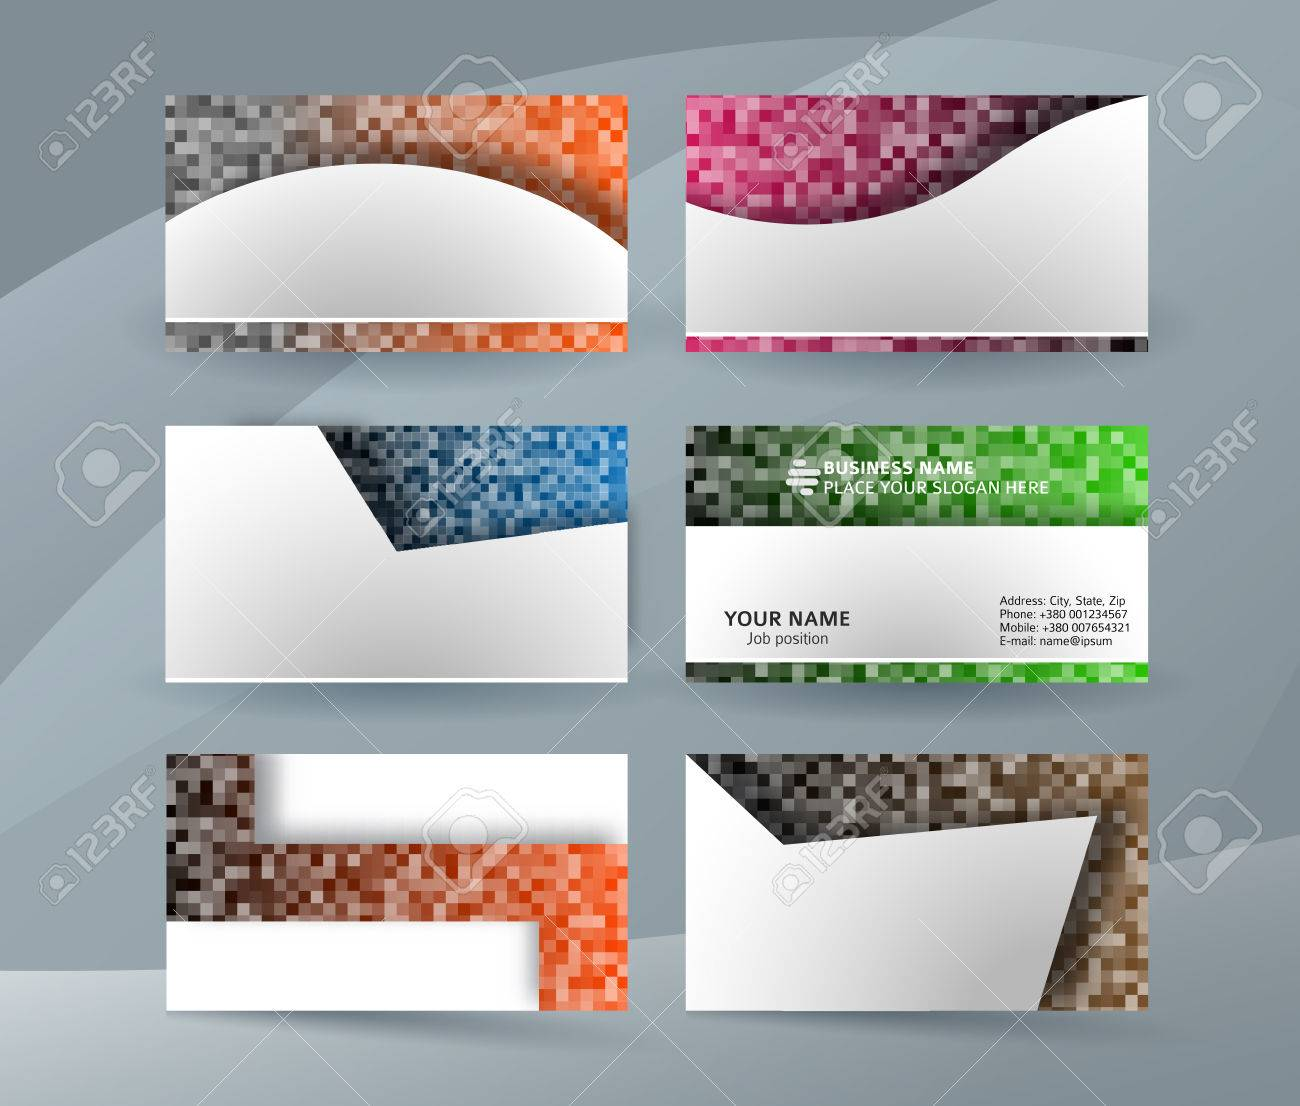 Professional and designer business card template or clear minimal professional and designer business card template or clear minimal visiting card set name card accmission Choice Image